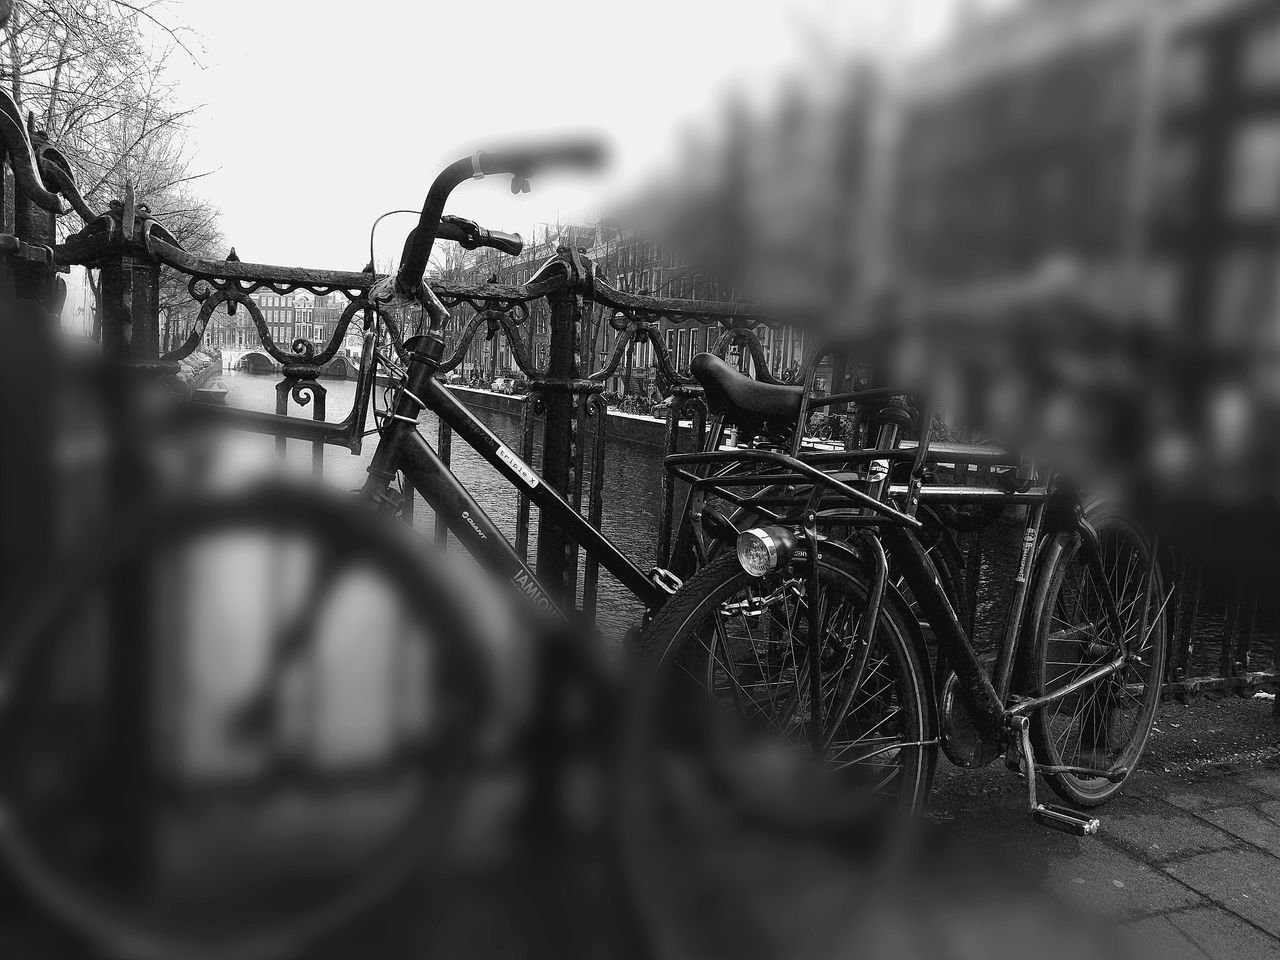 bicycle, transportation, mode of transport, stationary, land vehicle, selective focus, no people, bicycle rack, outdoors, day, wheel, spoke, close-up